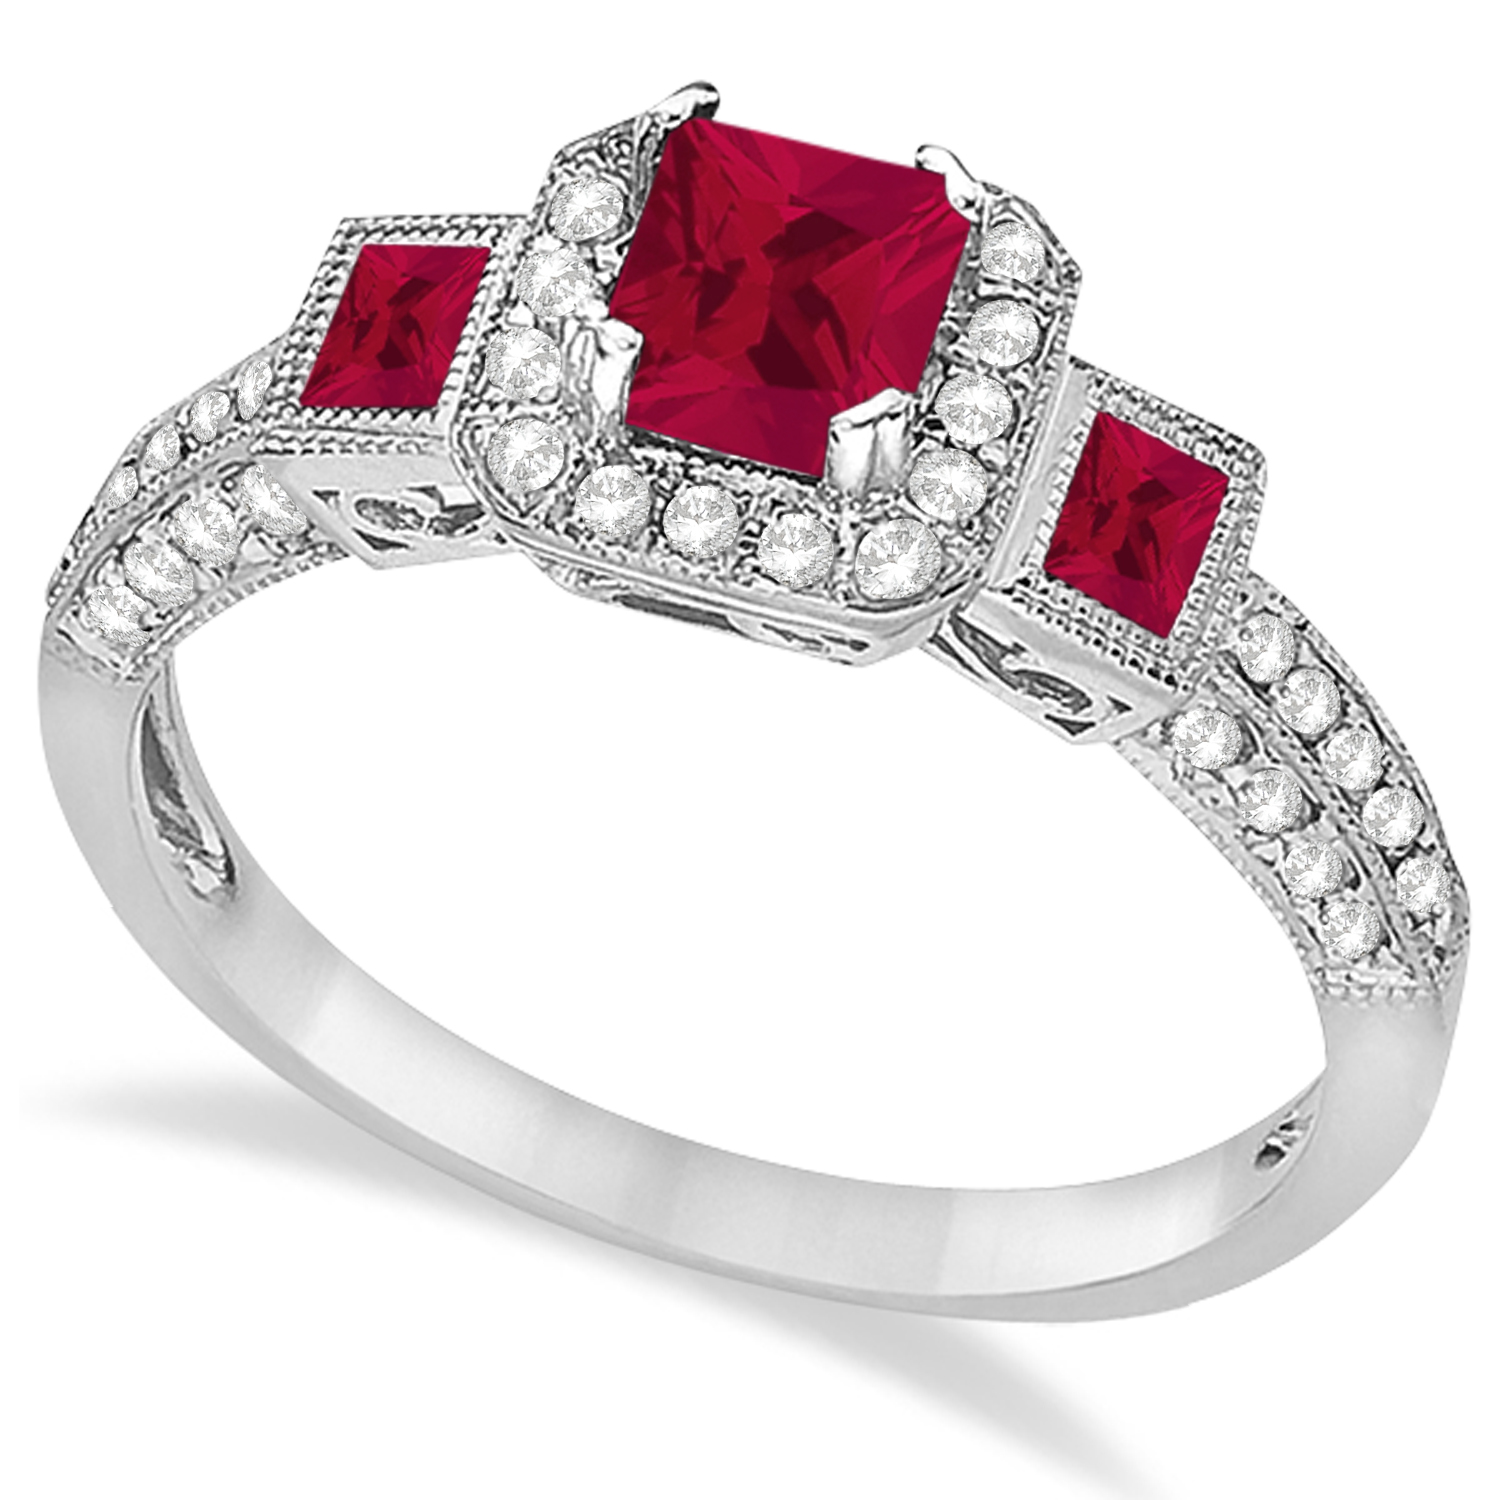 Ruby & Diamond Engagement Ring in 14k White Gold (1.35ctw)